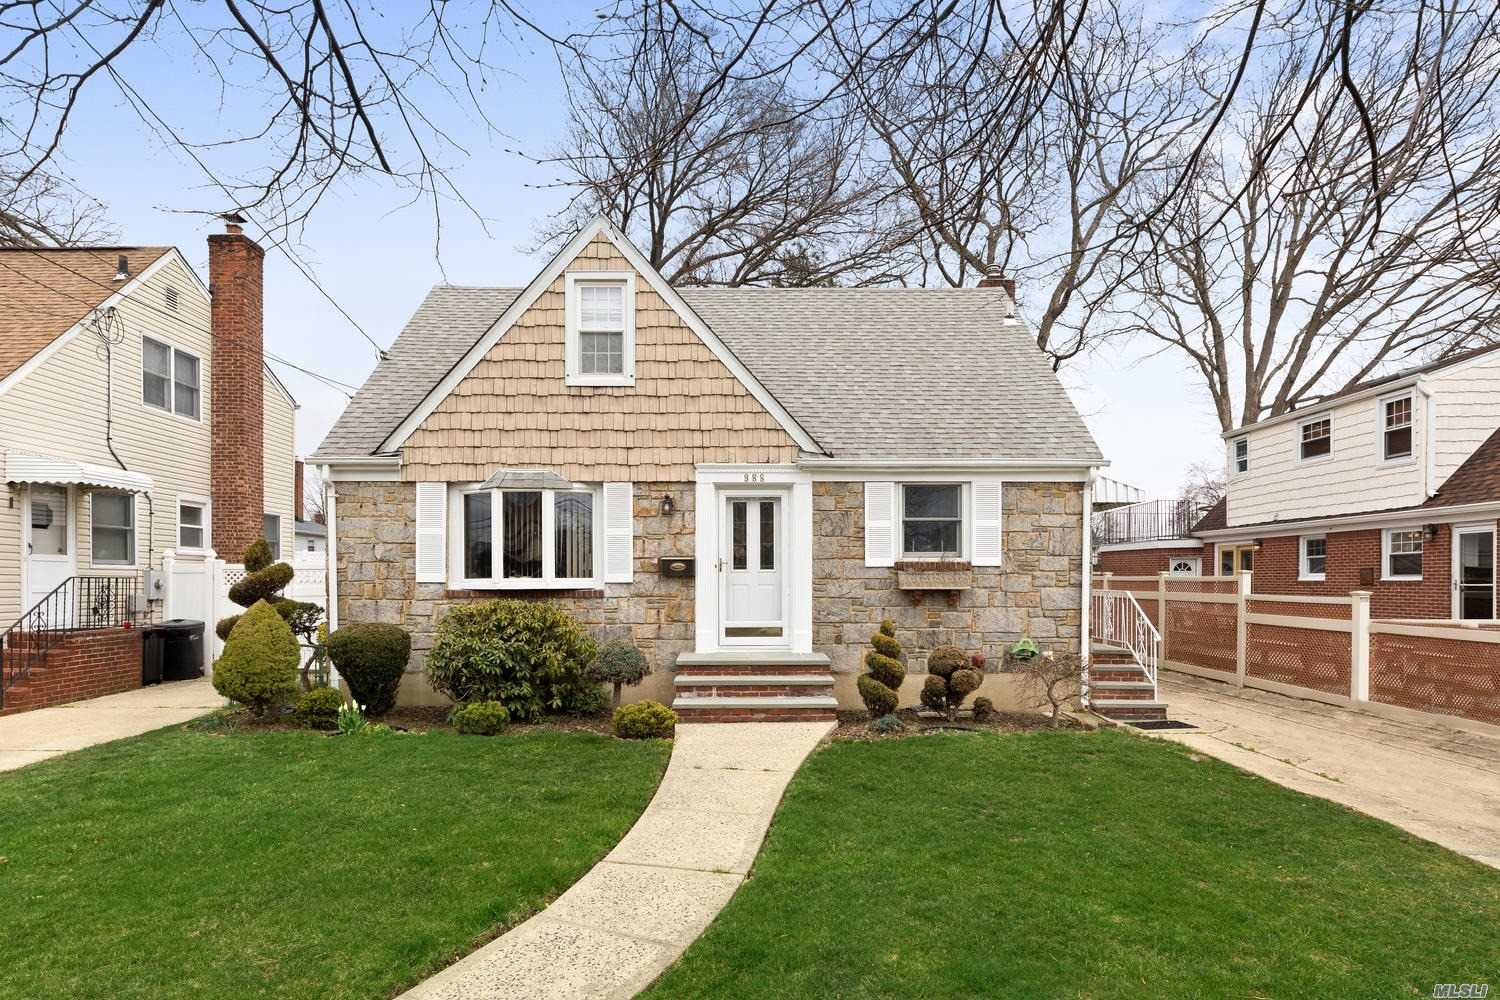 Very Clean! Move in ready home in desirable Franklin Square! Great Block. Won't last! Updated Kitchen, wood floors, plenty of storage. HW Heater, Boiler, Roof all new within the last 6 years. Close to School & Highways! Watch your kids walk to school!